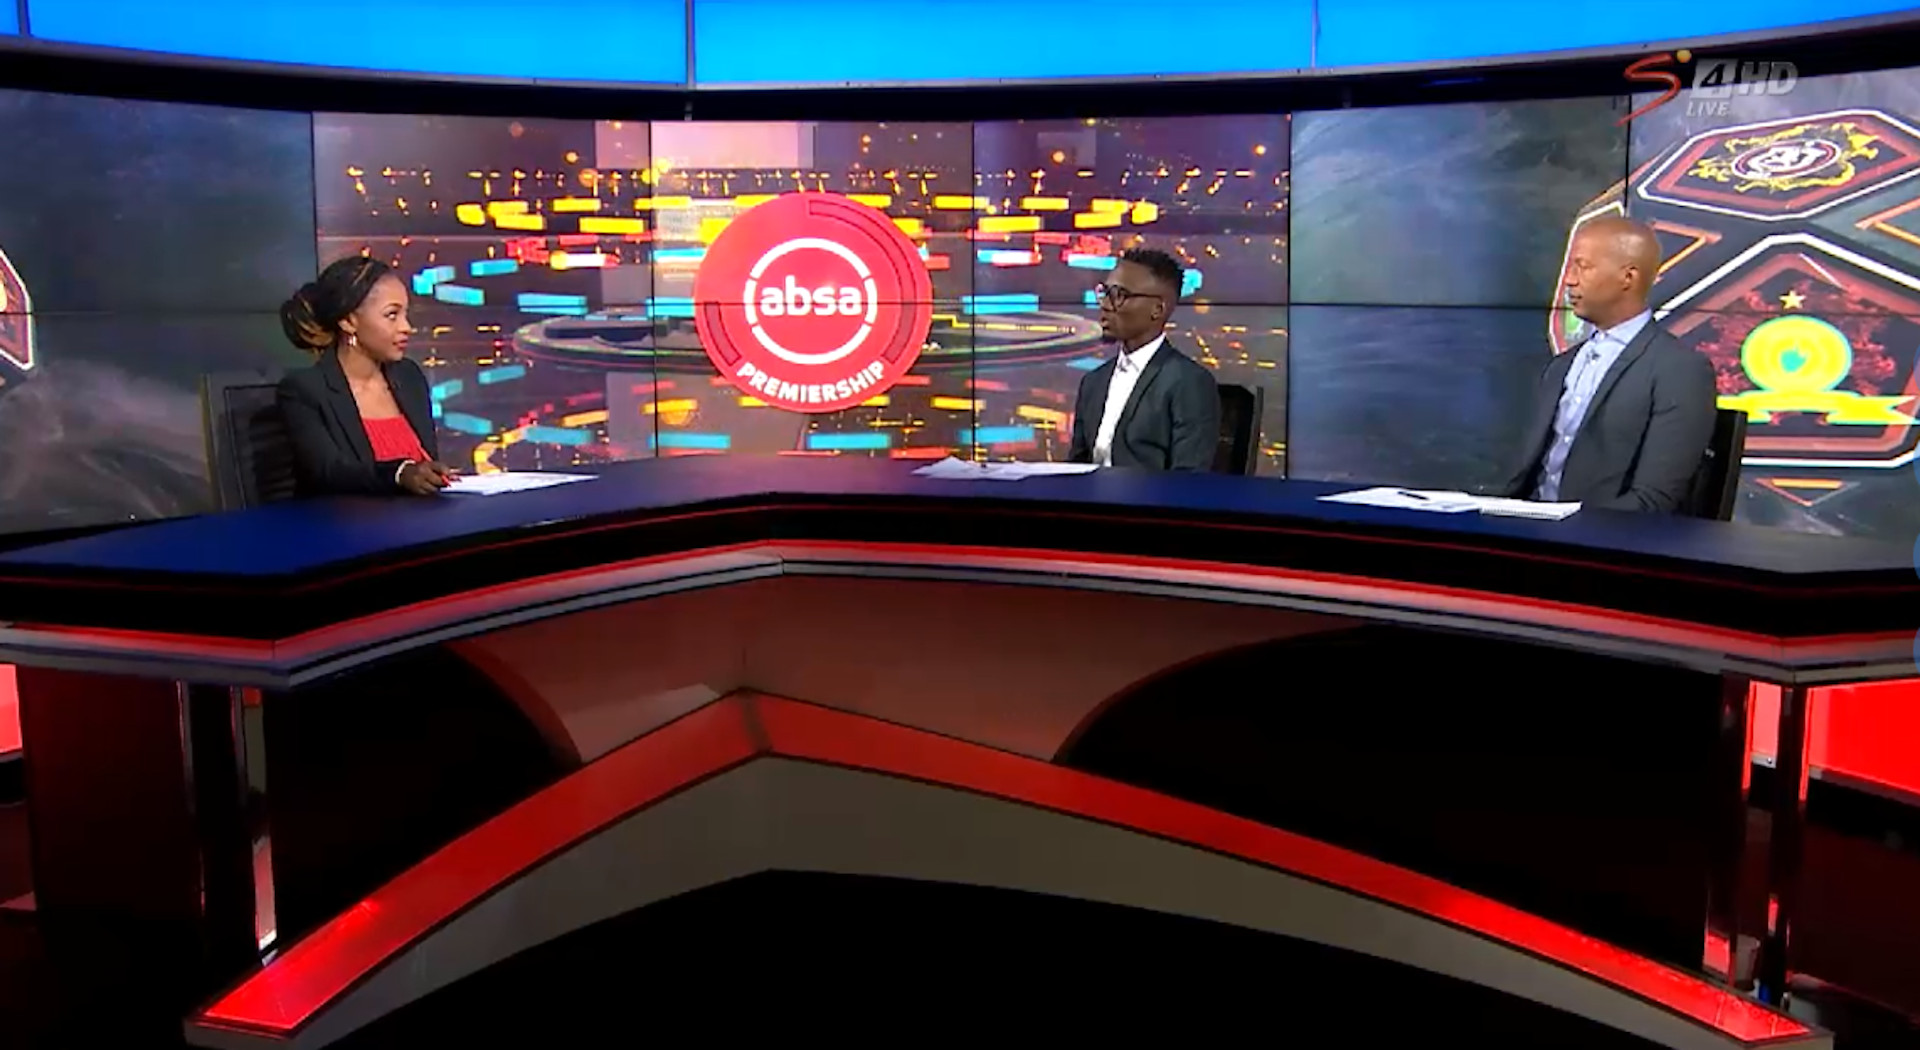 Absa Premiership | Bloemfontein Celtic v SuperSport United | halftime chat